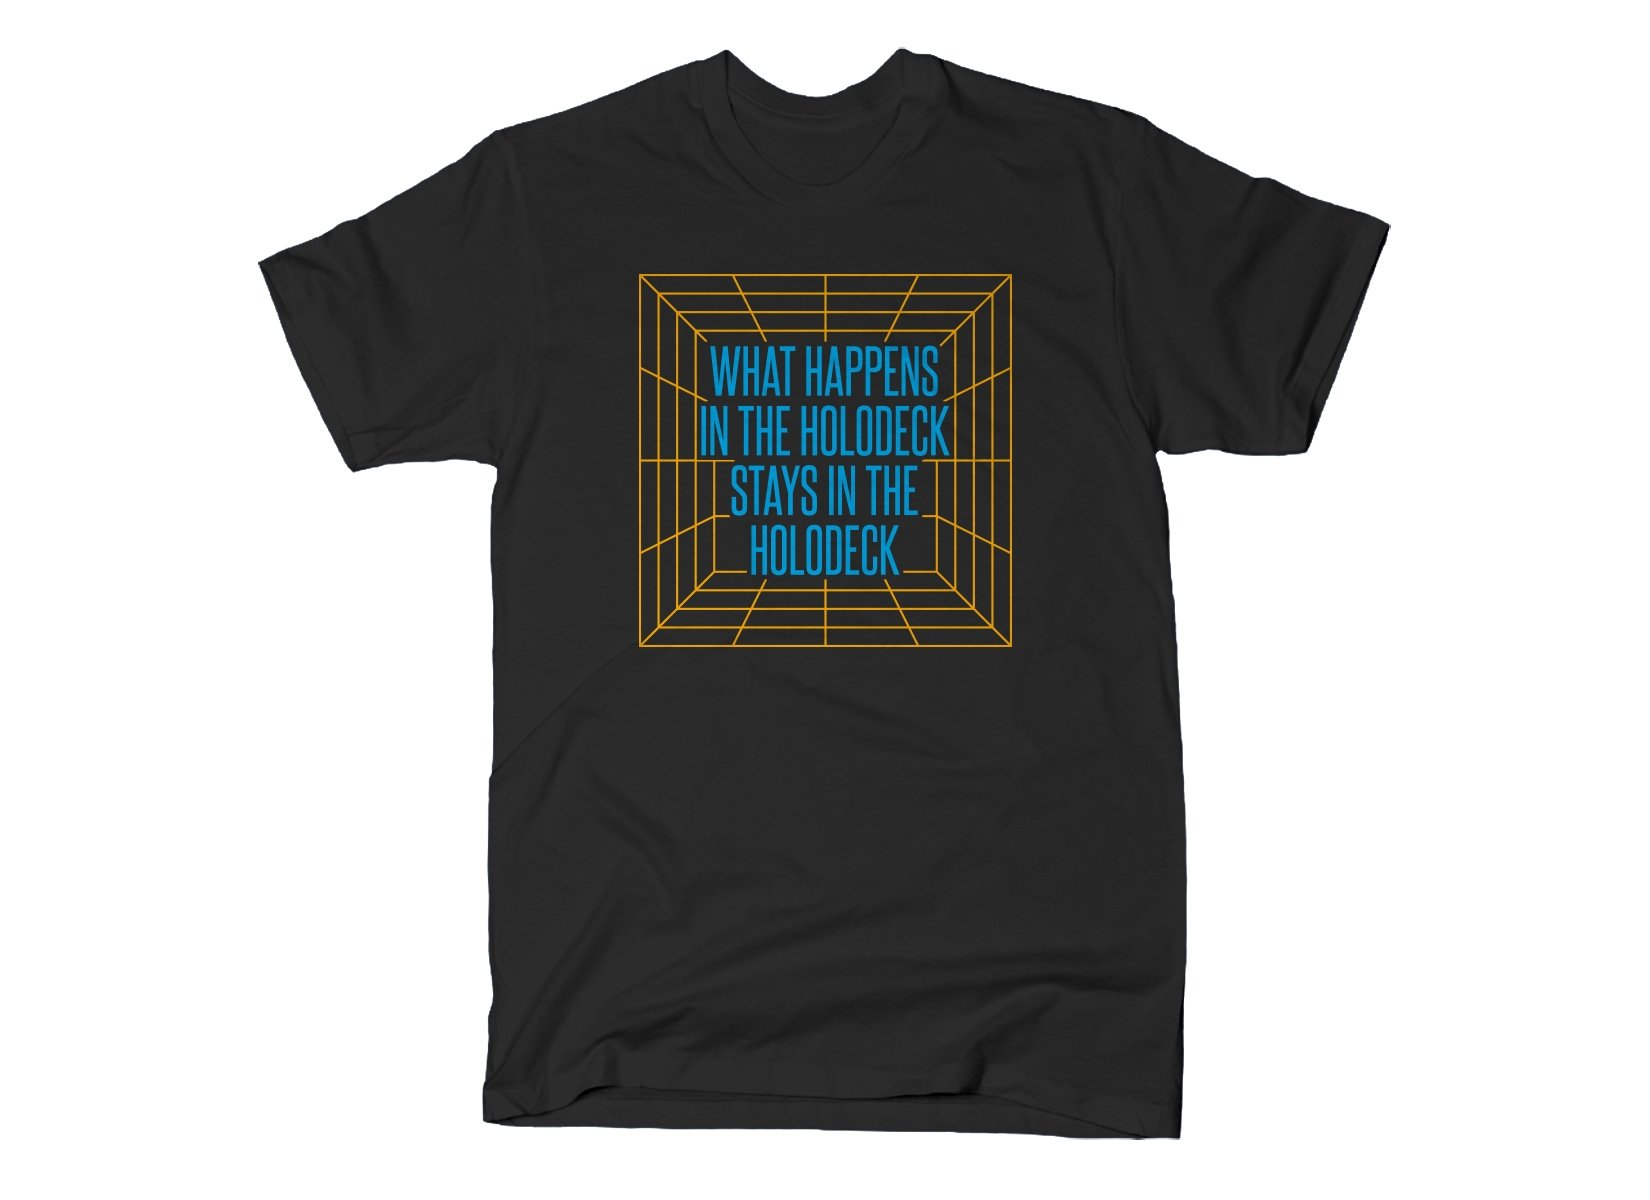 What Happens In The Holodeck on Mens T-Shirt